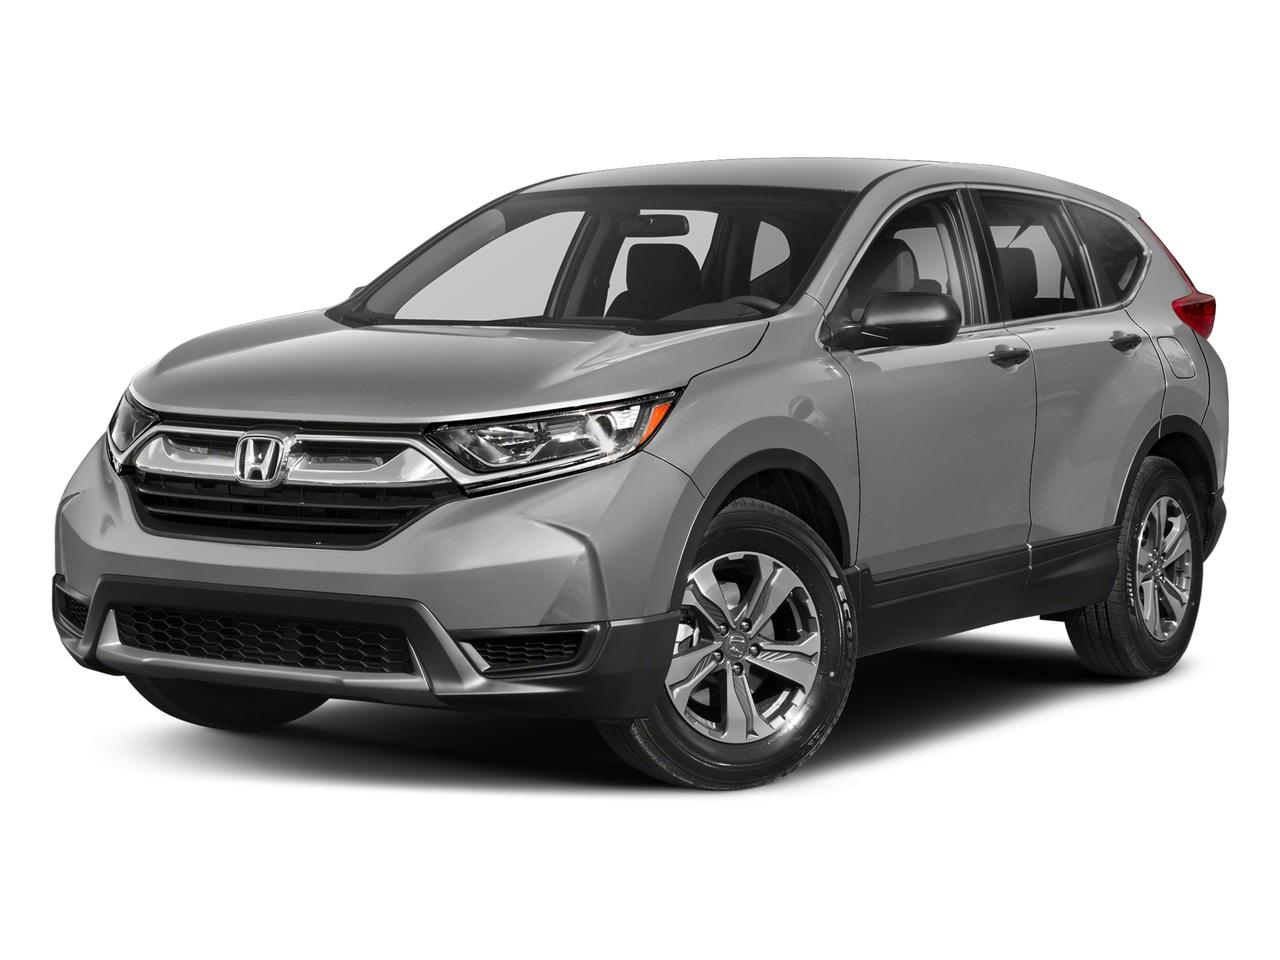 2018 Honda CR-V Vehicle Photo in Darlington, SC 29532